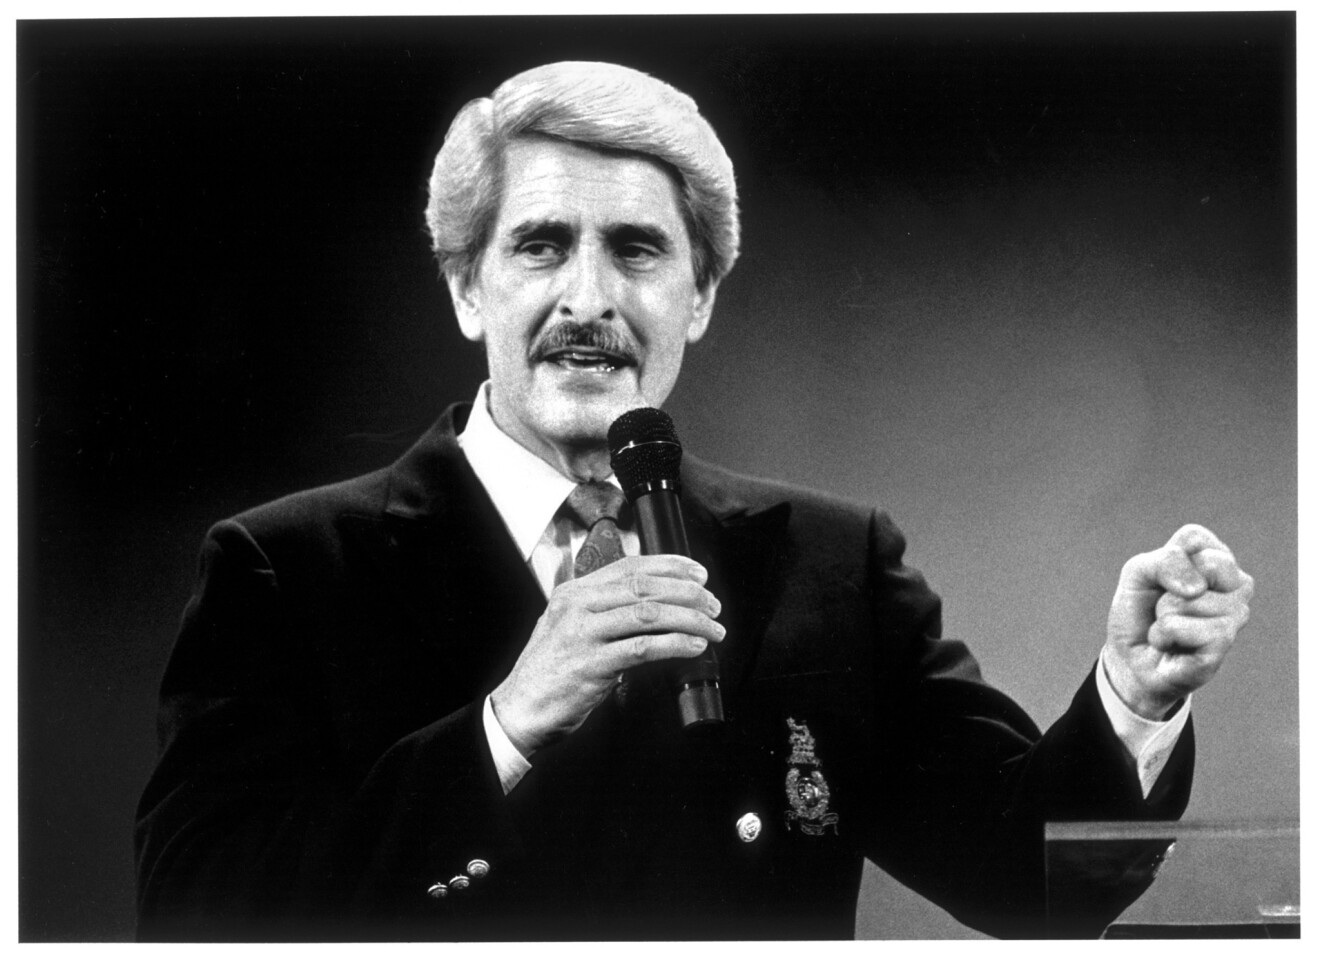 Paul Crouch (1934-2013) -- A pioneering televangelist who founded Trinity Broadcasting Network.